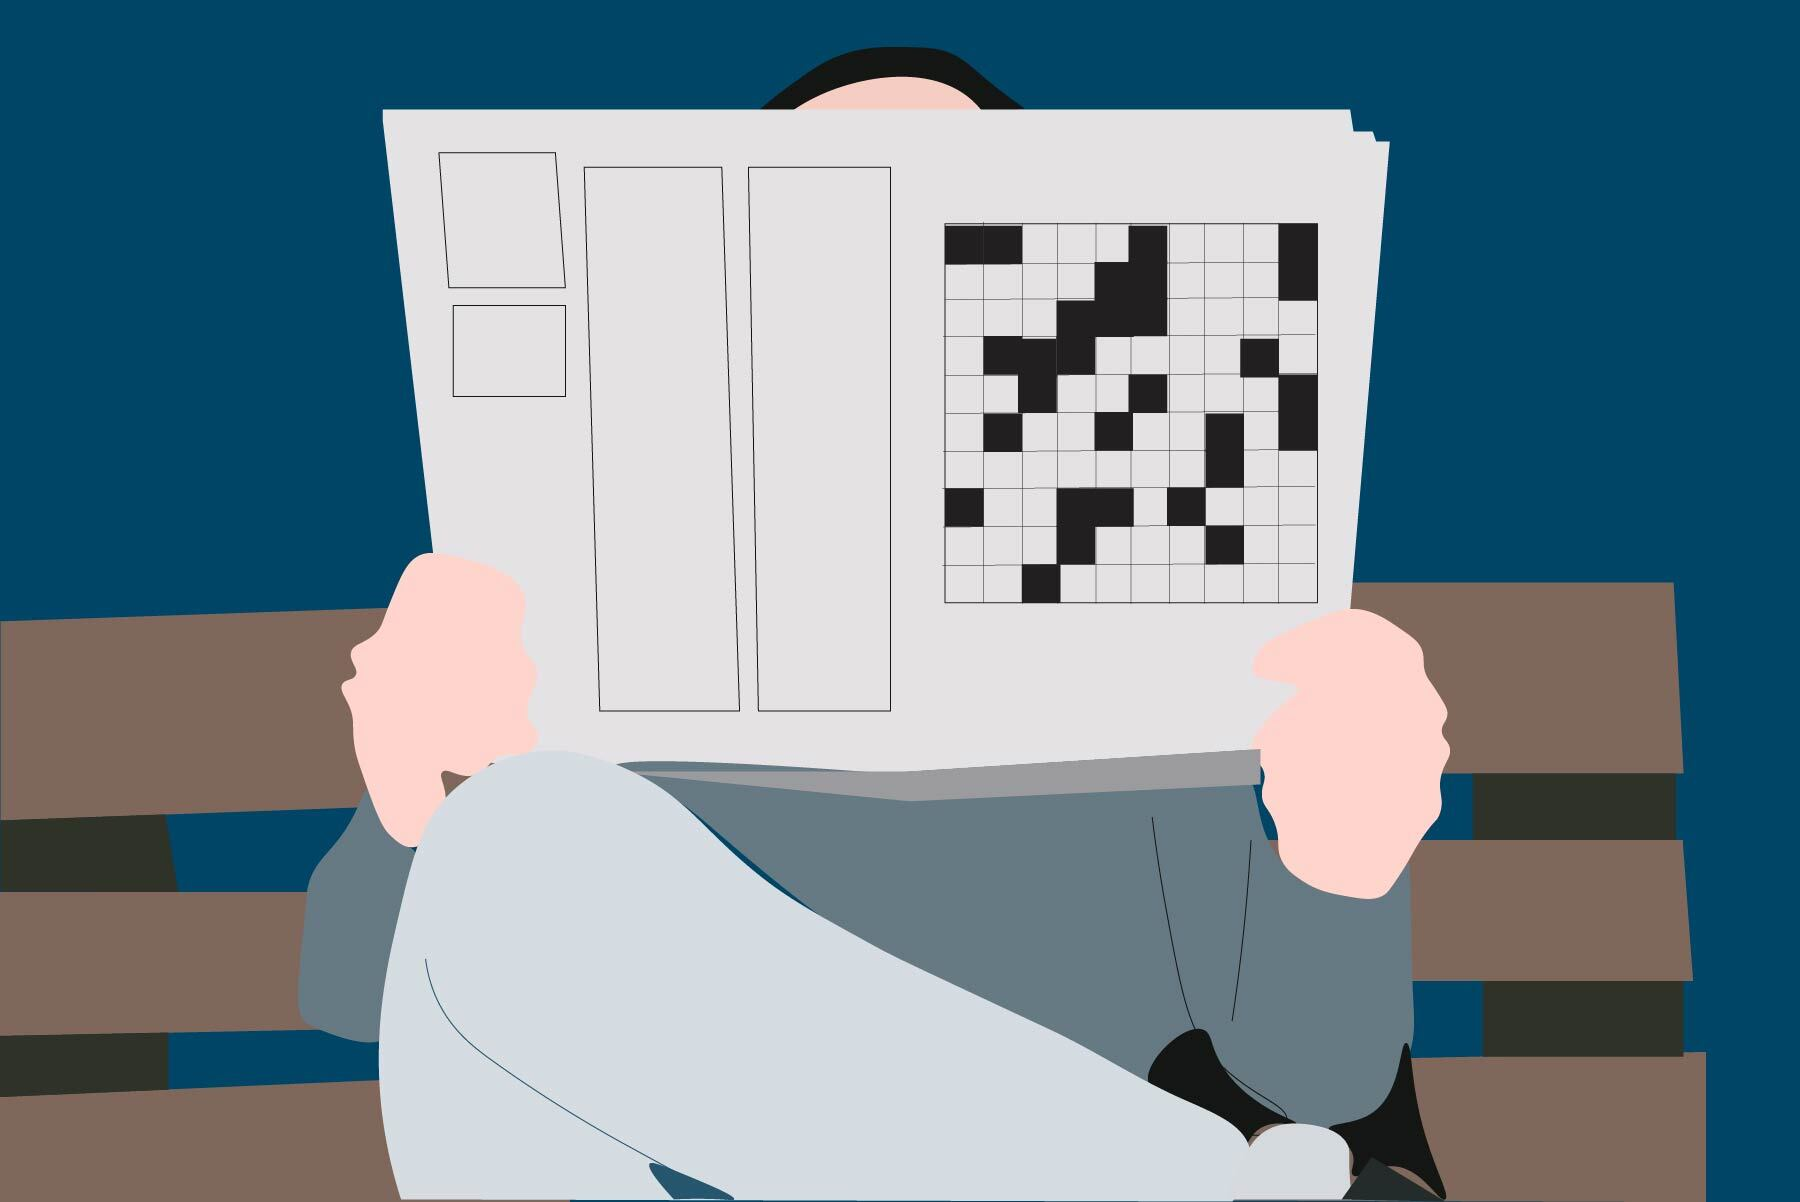 NY Times Crossword can help improve your mental state.